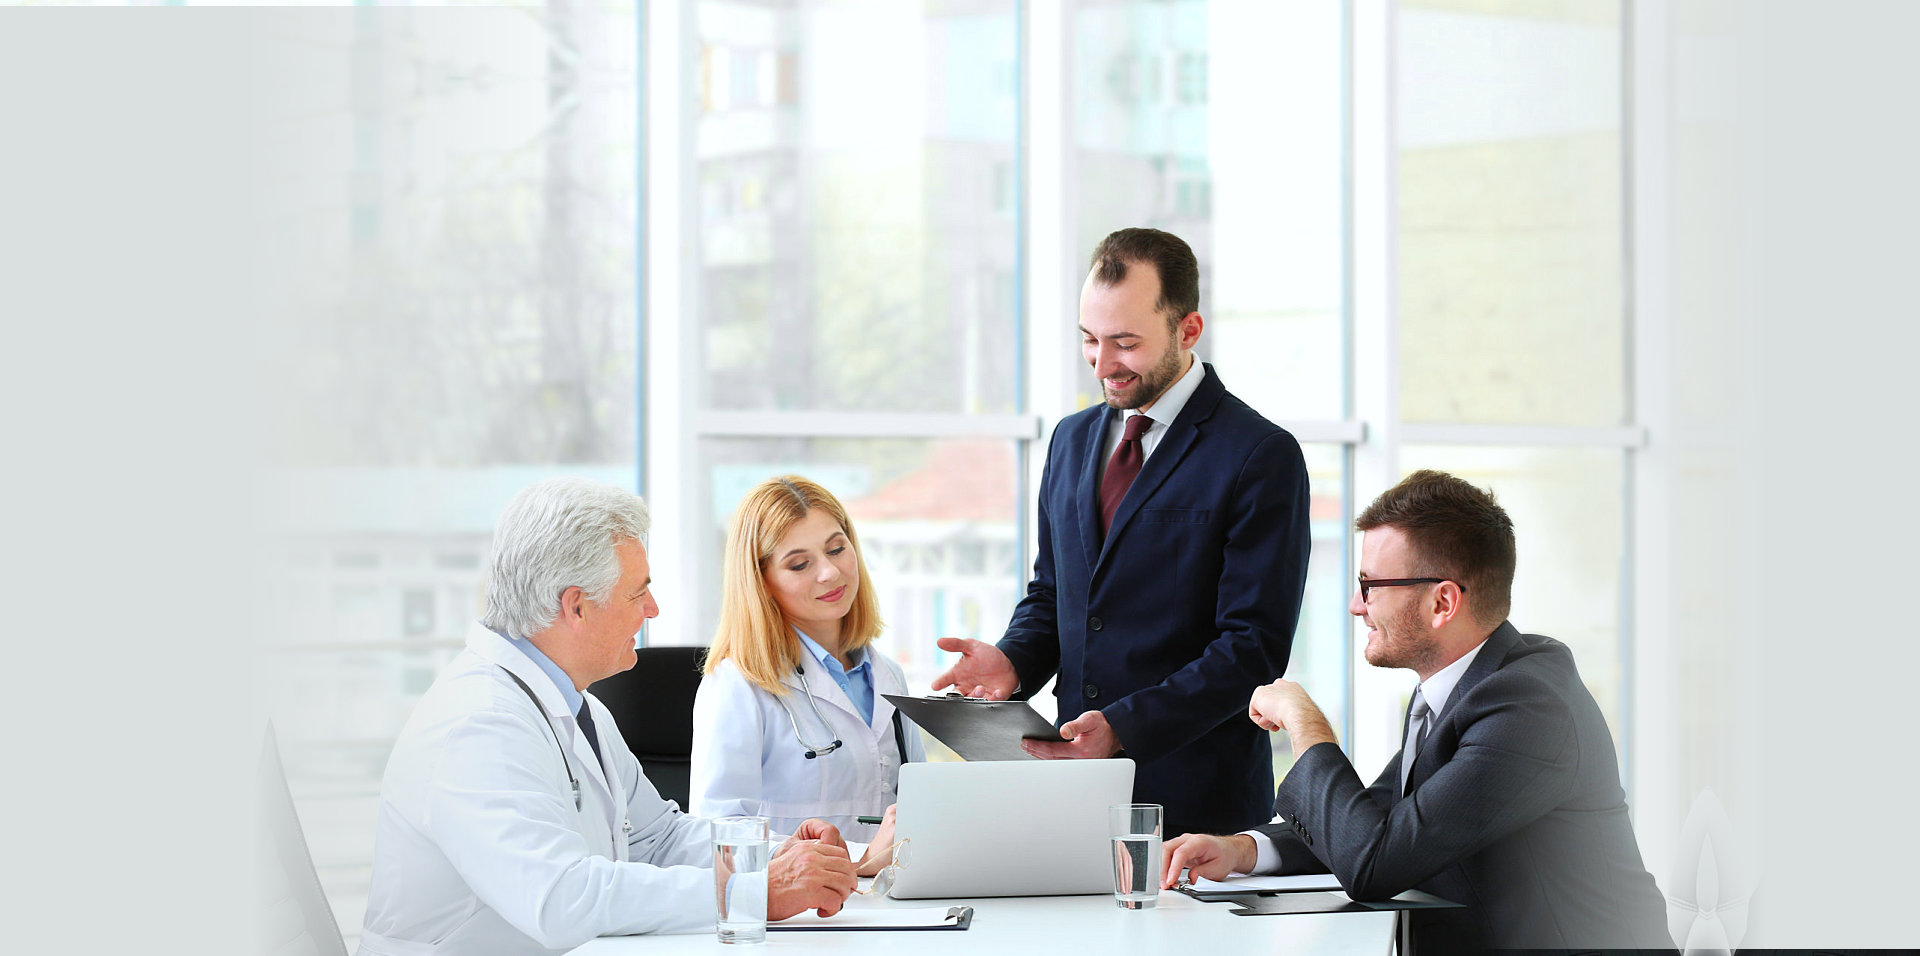 two medical personel discussing with two men wearing corporate attire